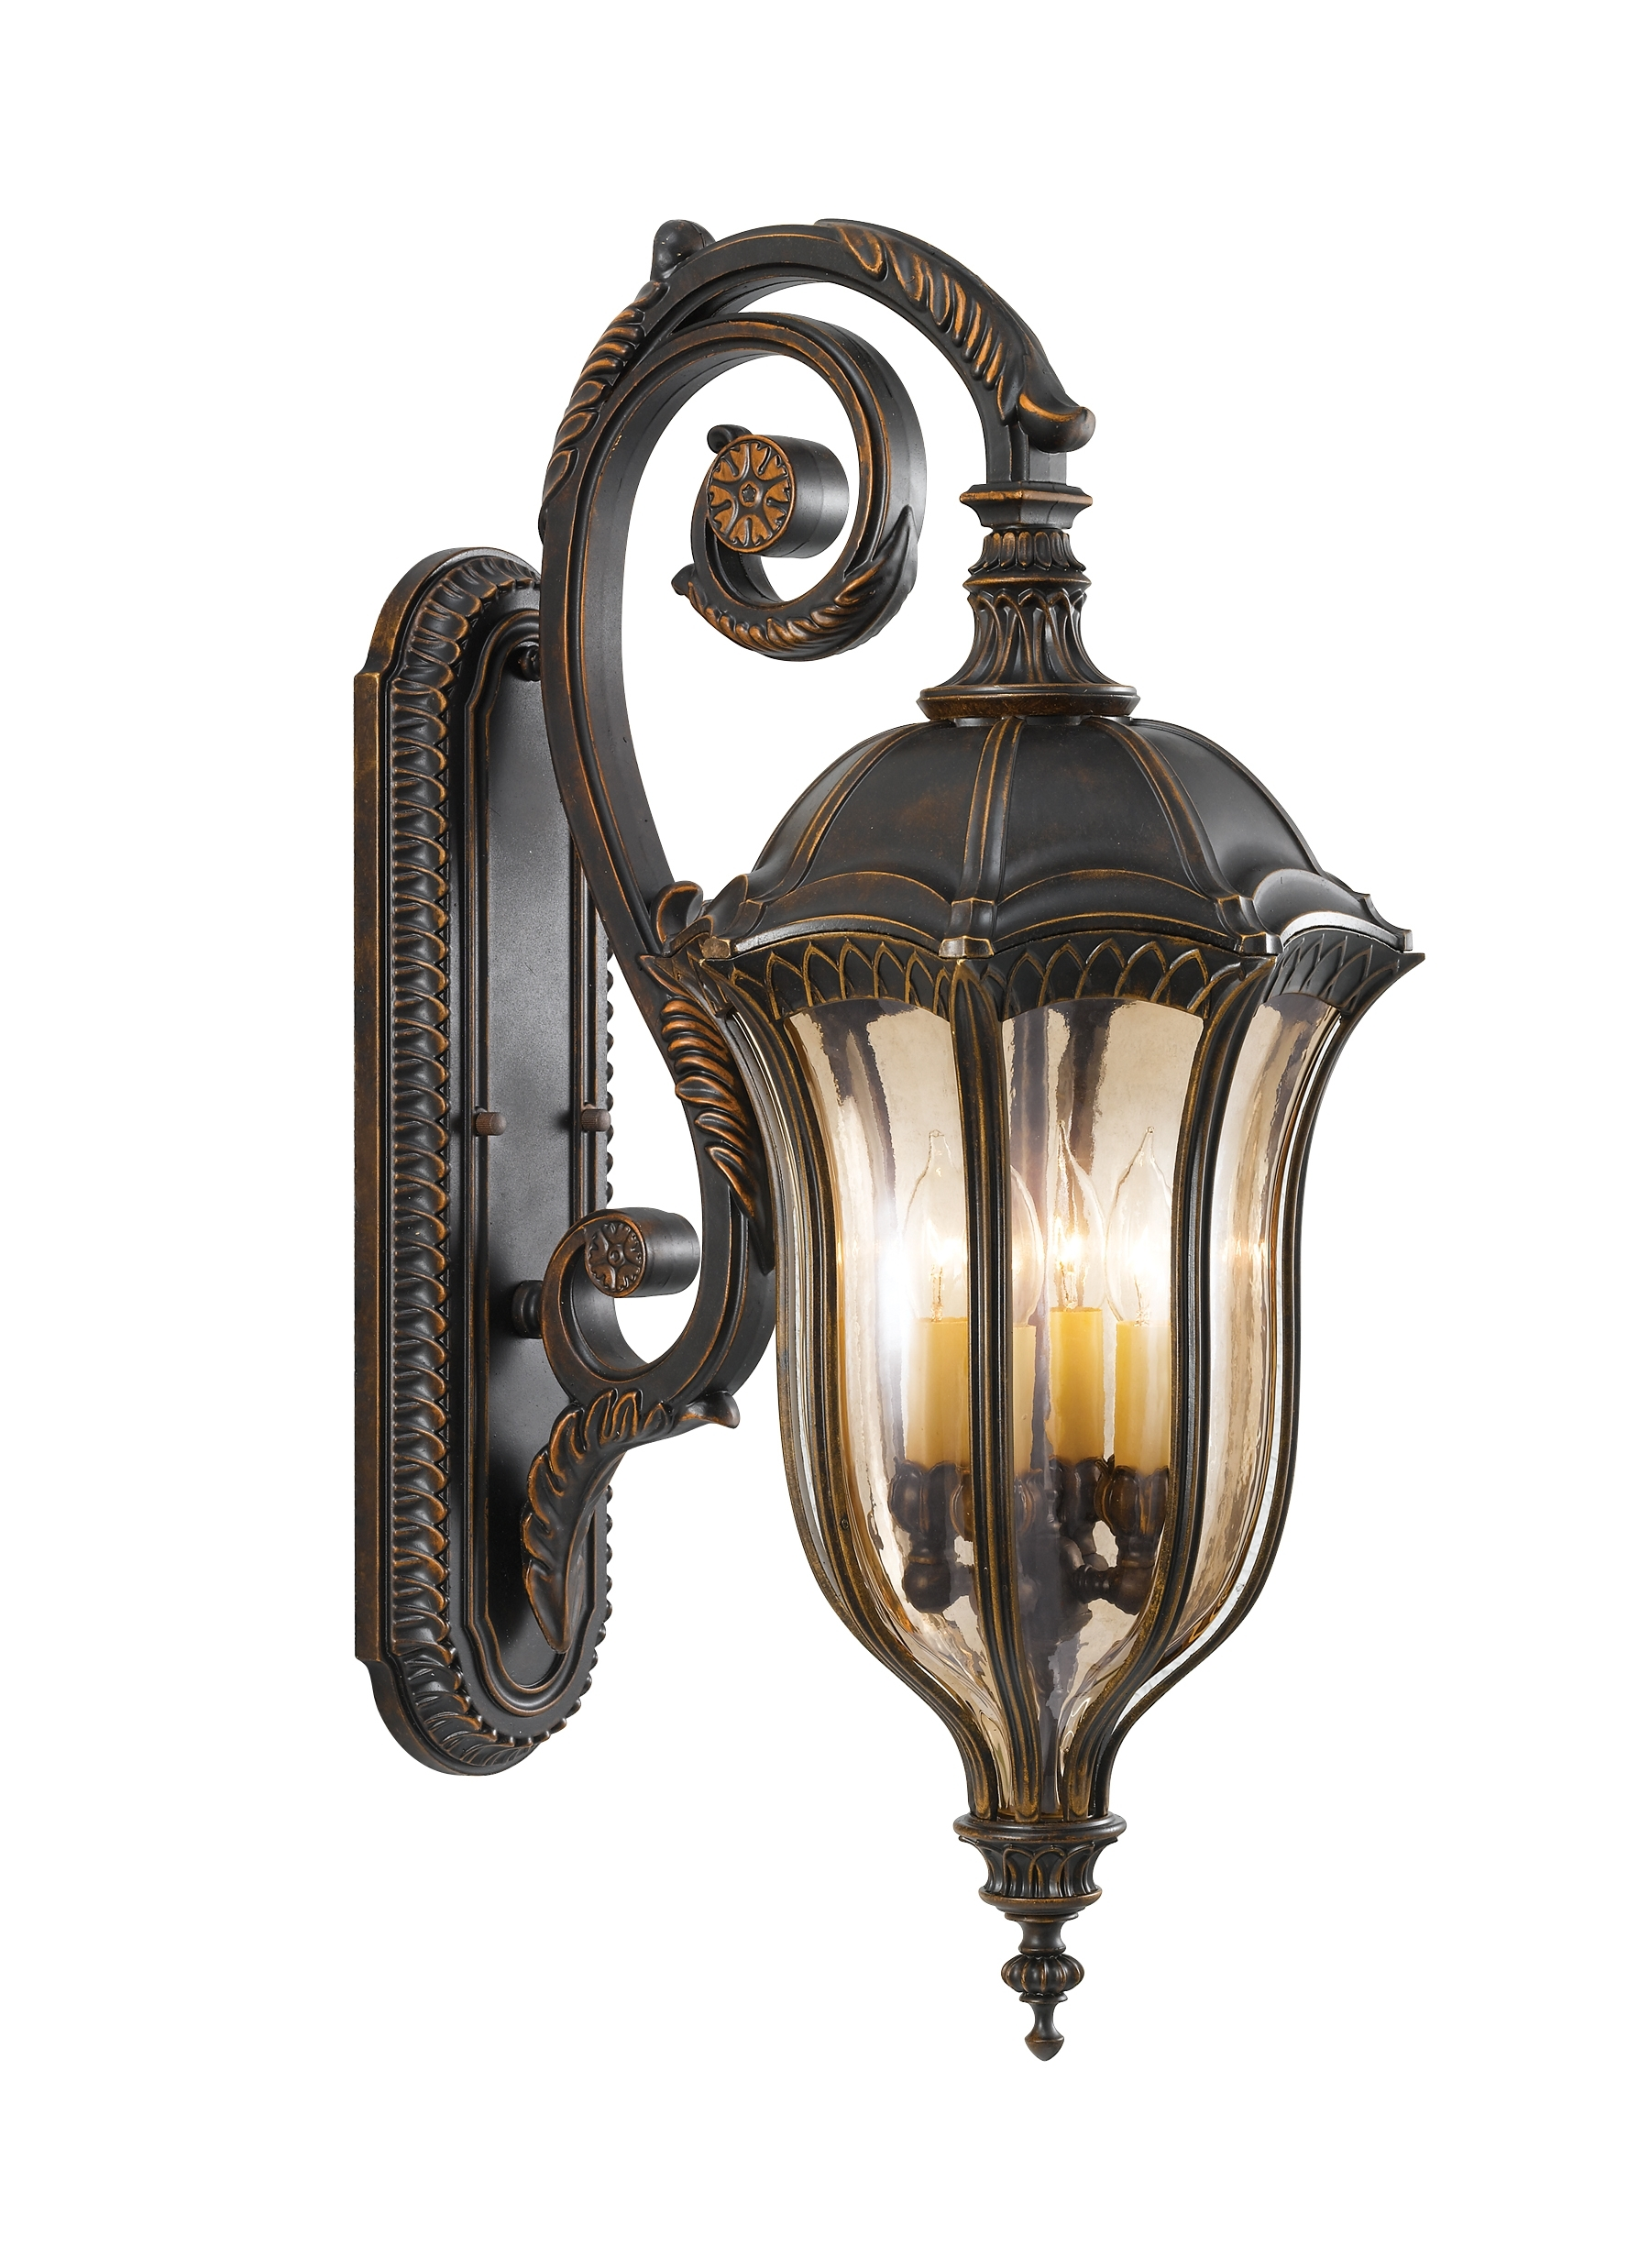 Ol6004wal,4 – Light Wall Lantern,walnut Pertaining To Best And Newest Tuscan Outdoor Wall Lighting (View 10 of 20)